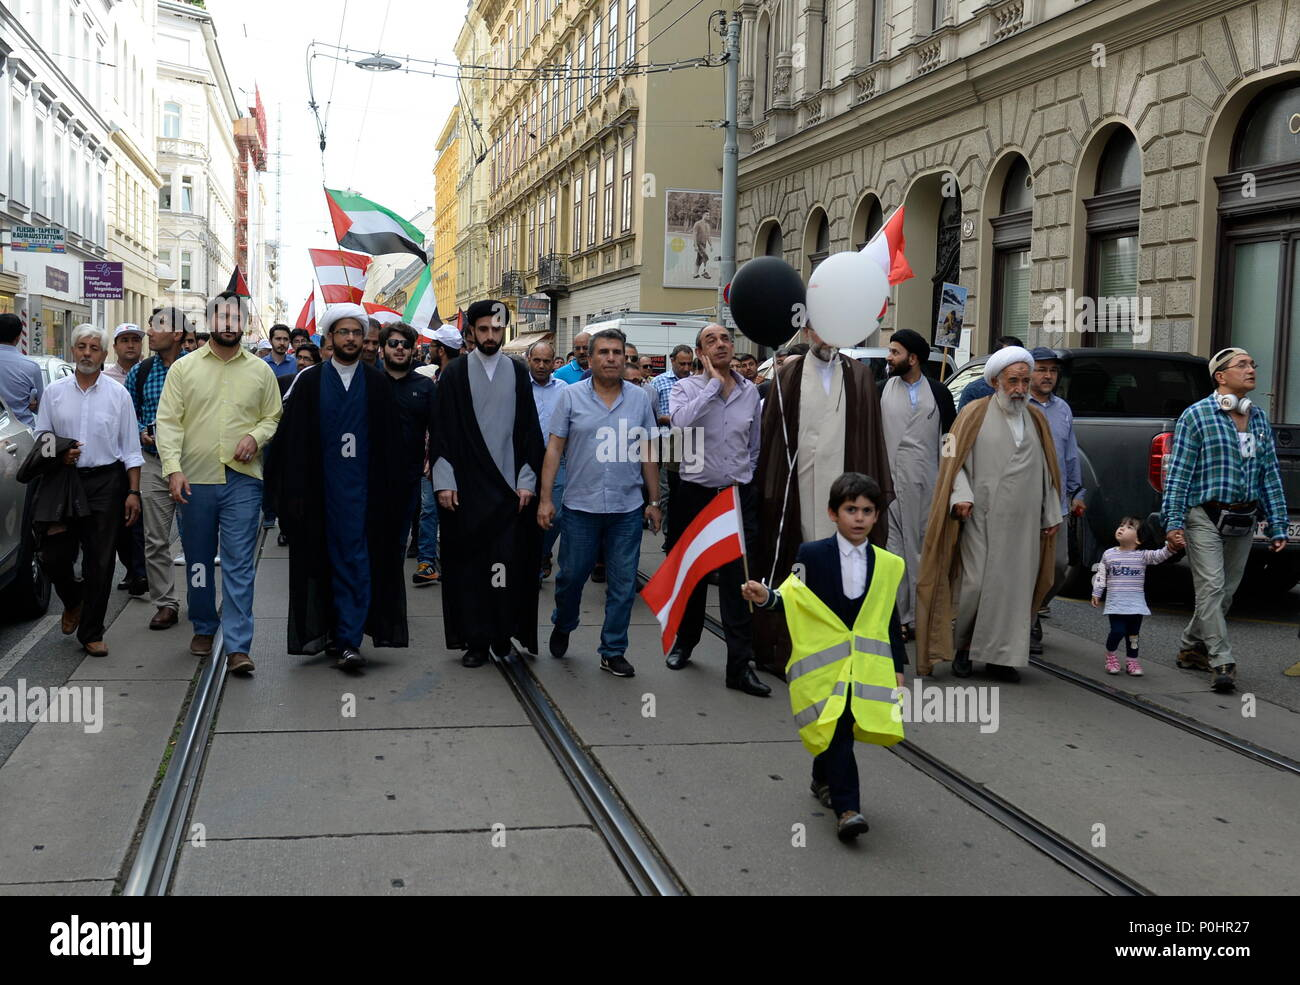 Vienna, Austria. May 9, 2018. Demonstration Support for democracy and freedom efforts of the Palestinian people. The demonstration takes place on the 'Al-Quds-Day'. Credit: Franz Perc / Alamy Live News - Stock Image